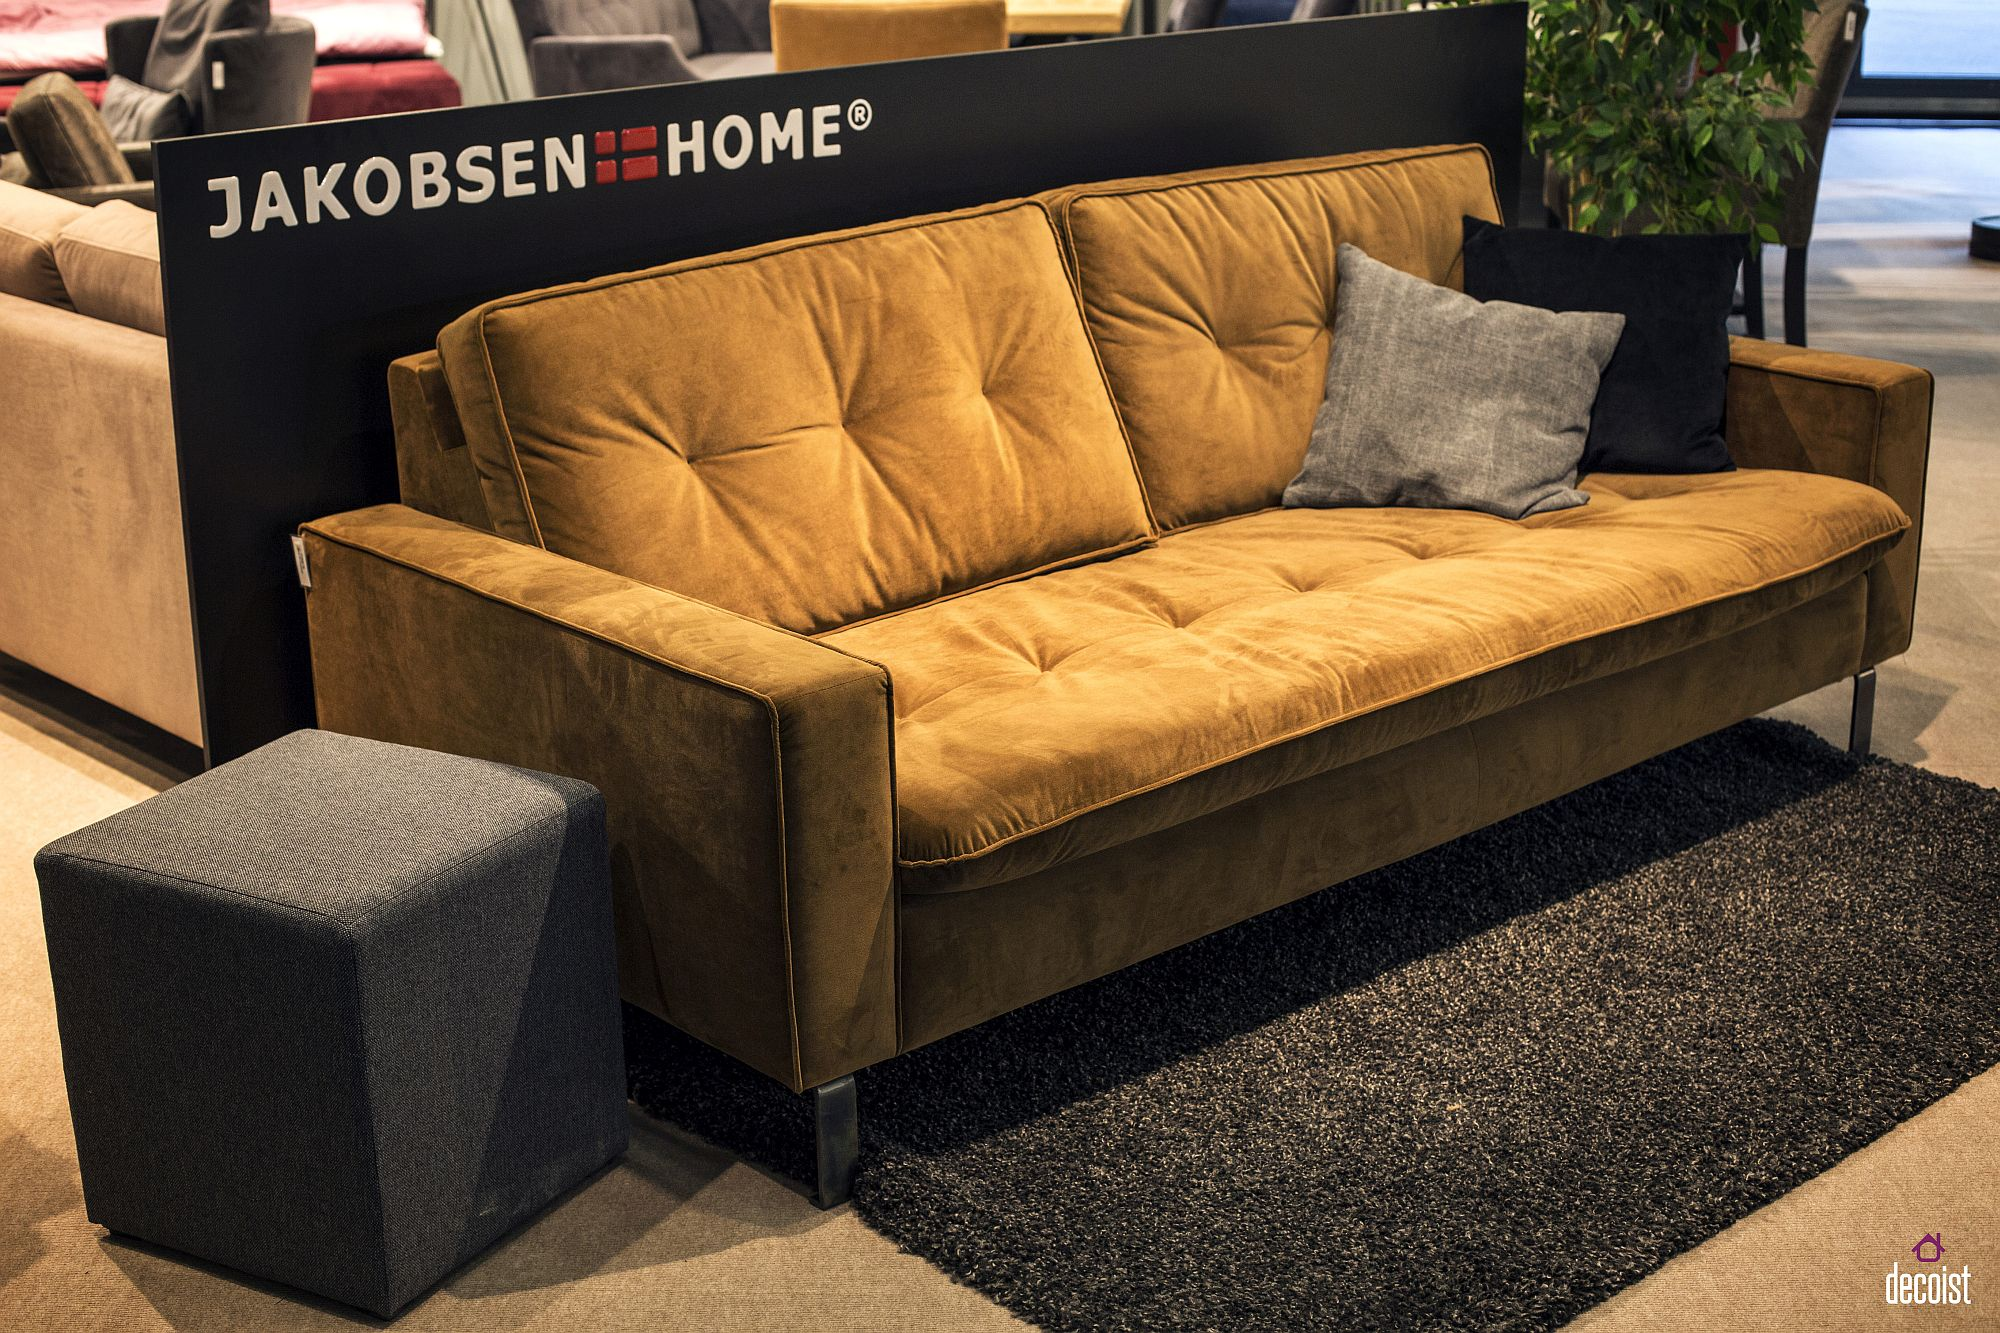 Comfy modern couch in bright yellow from Jakobsen Home